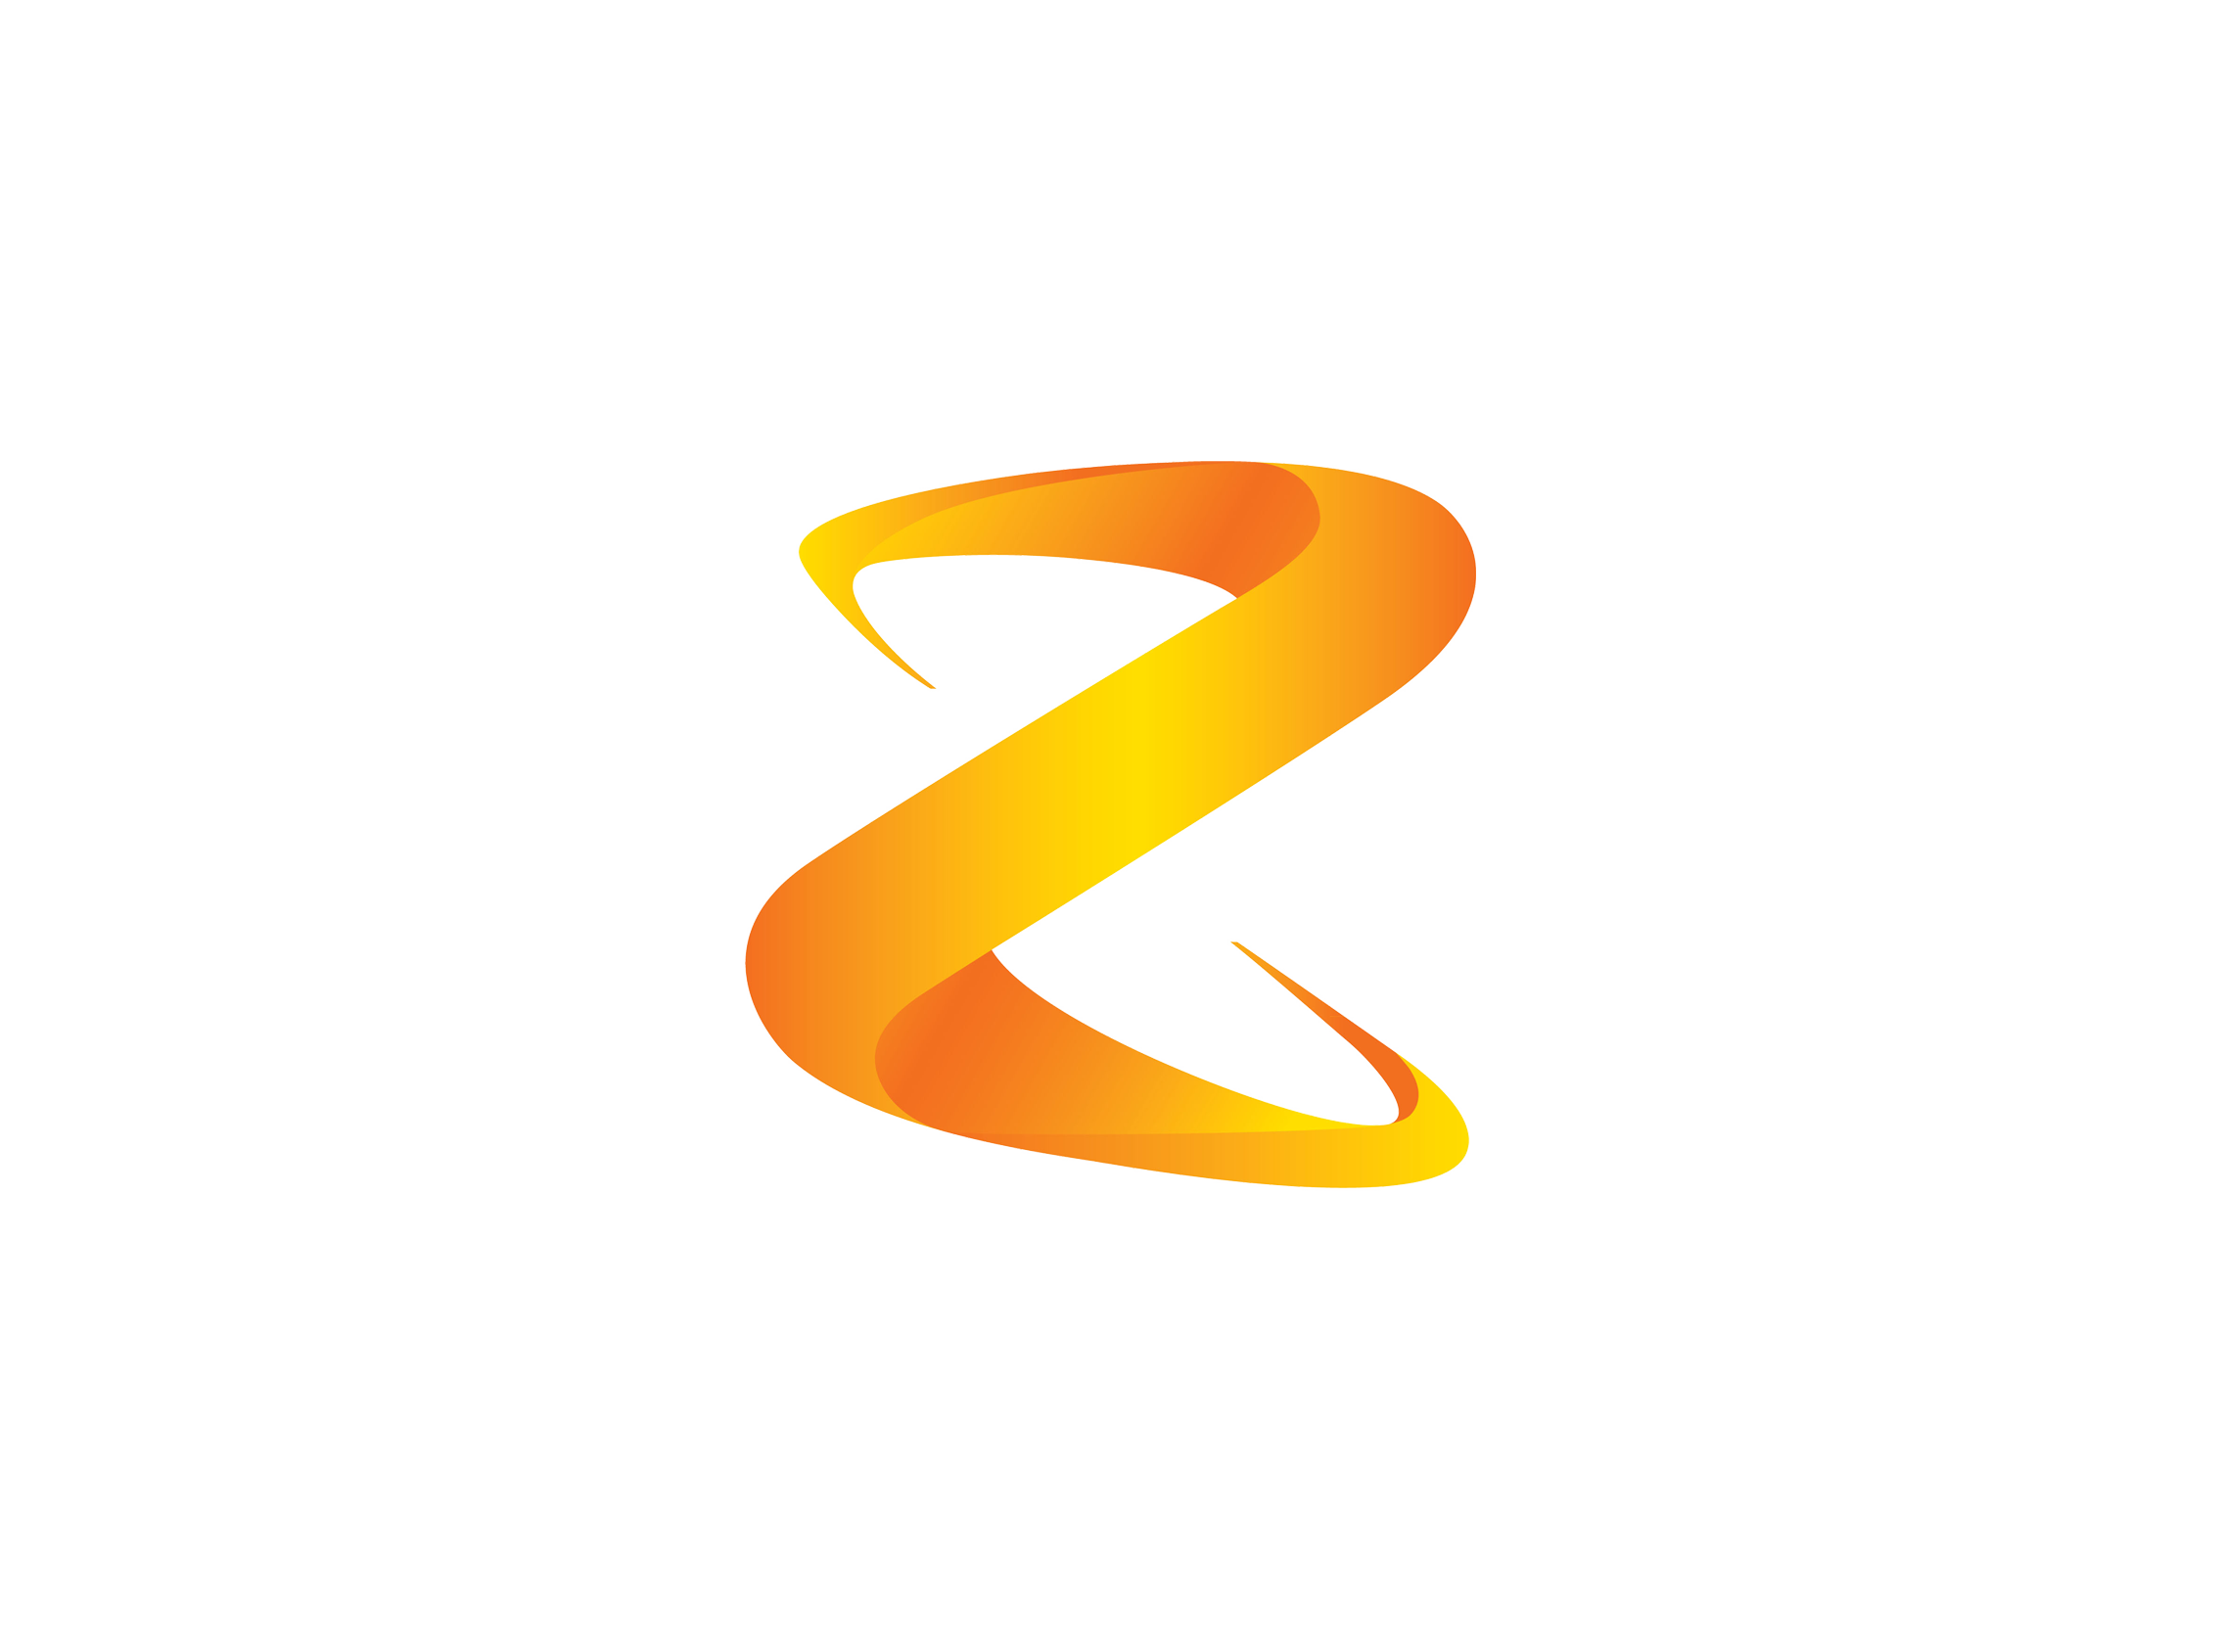 keywords logo design Z corporate 3D Z Monogram Initial